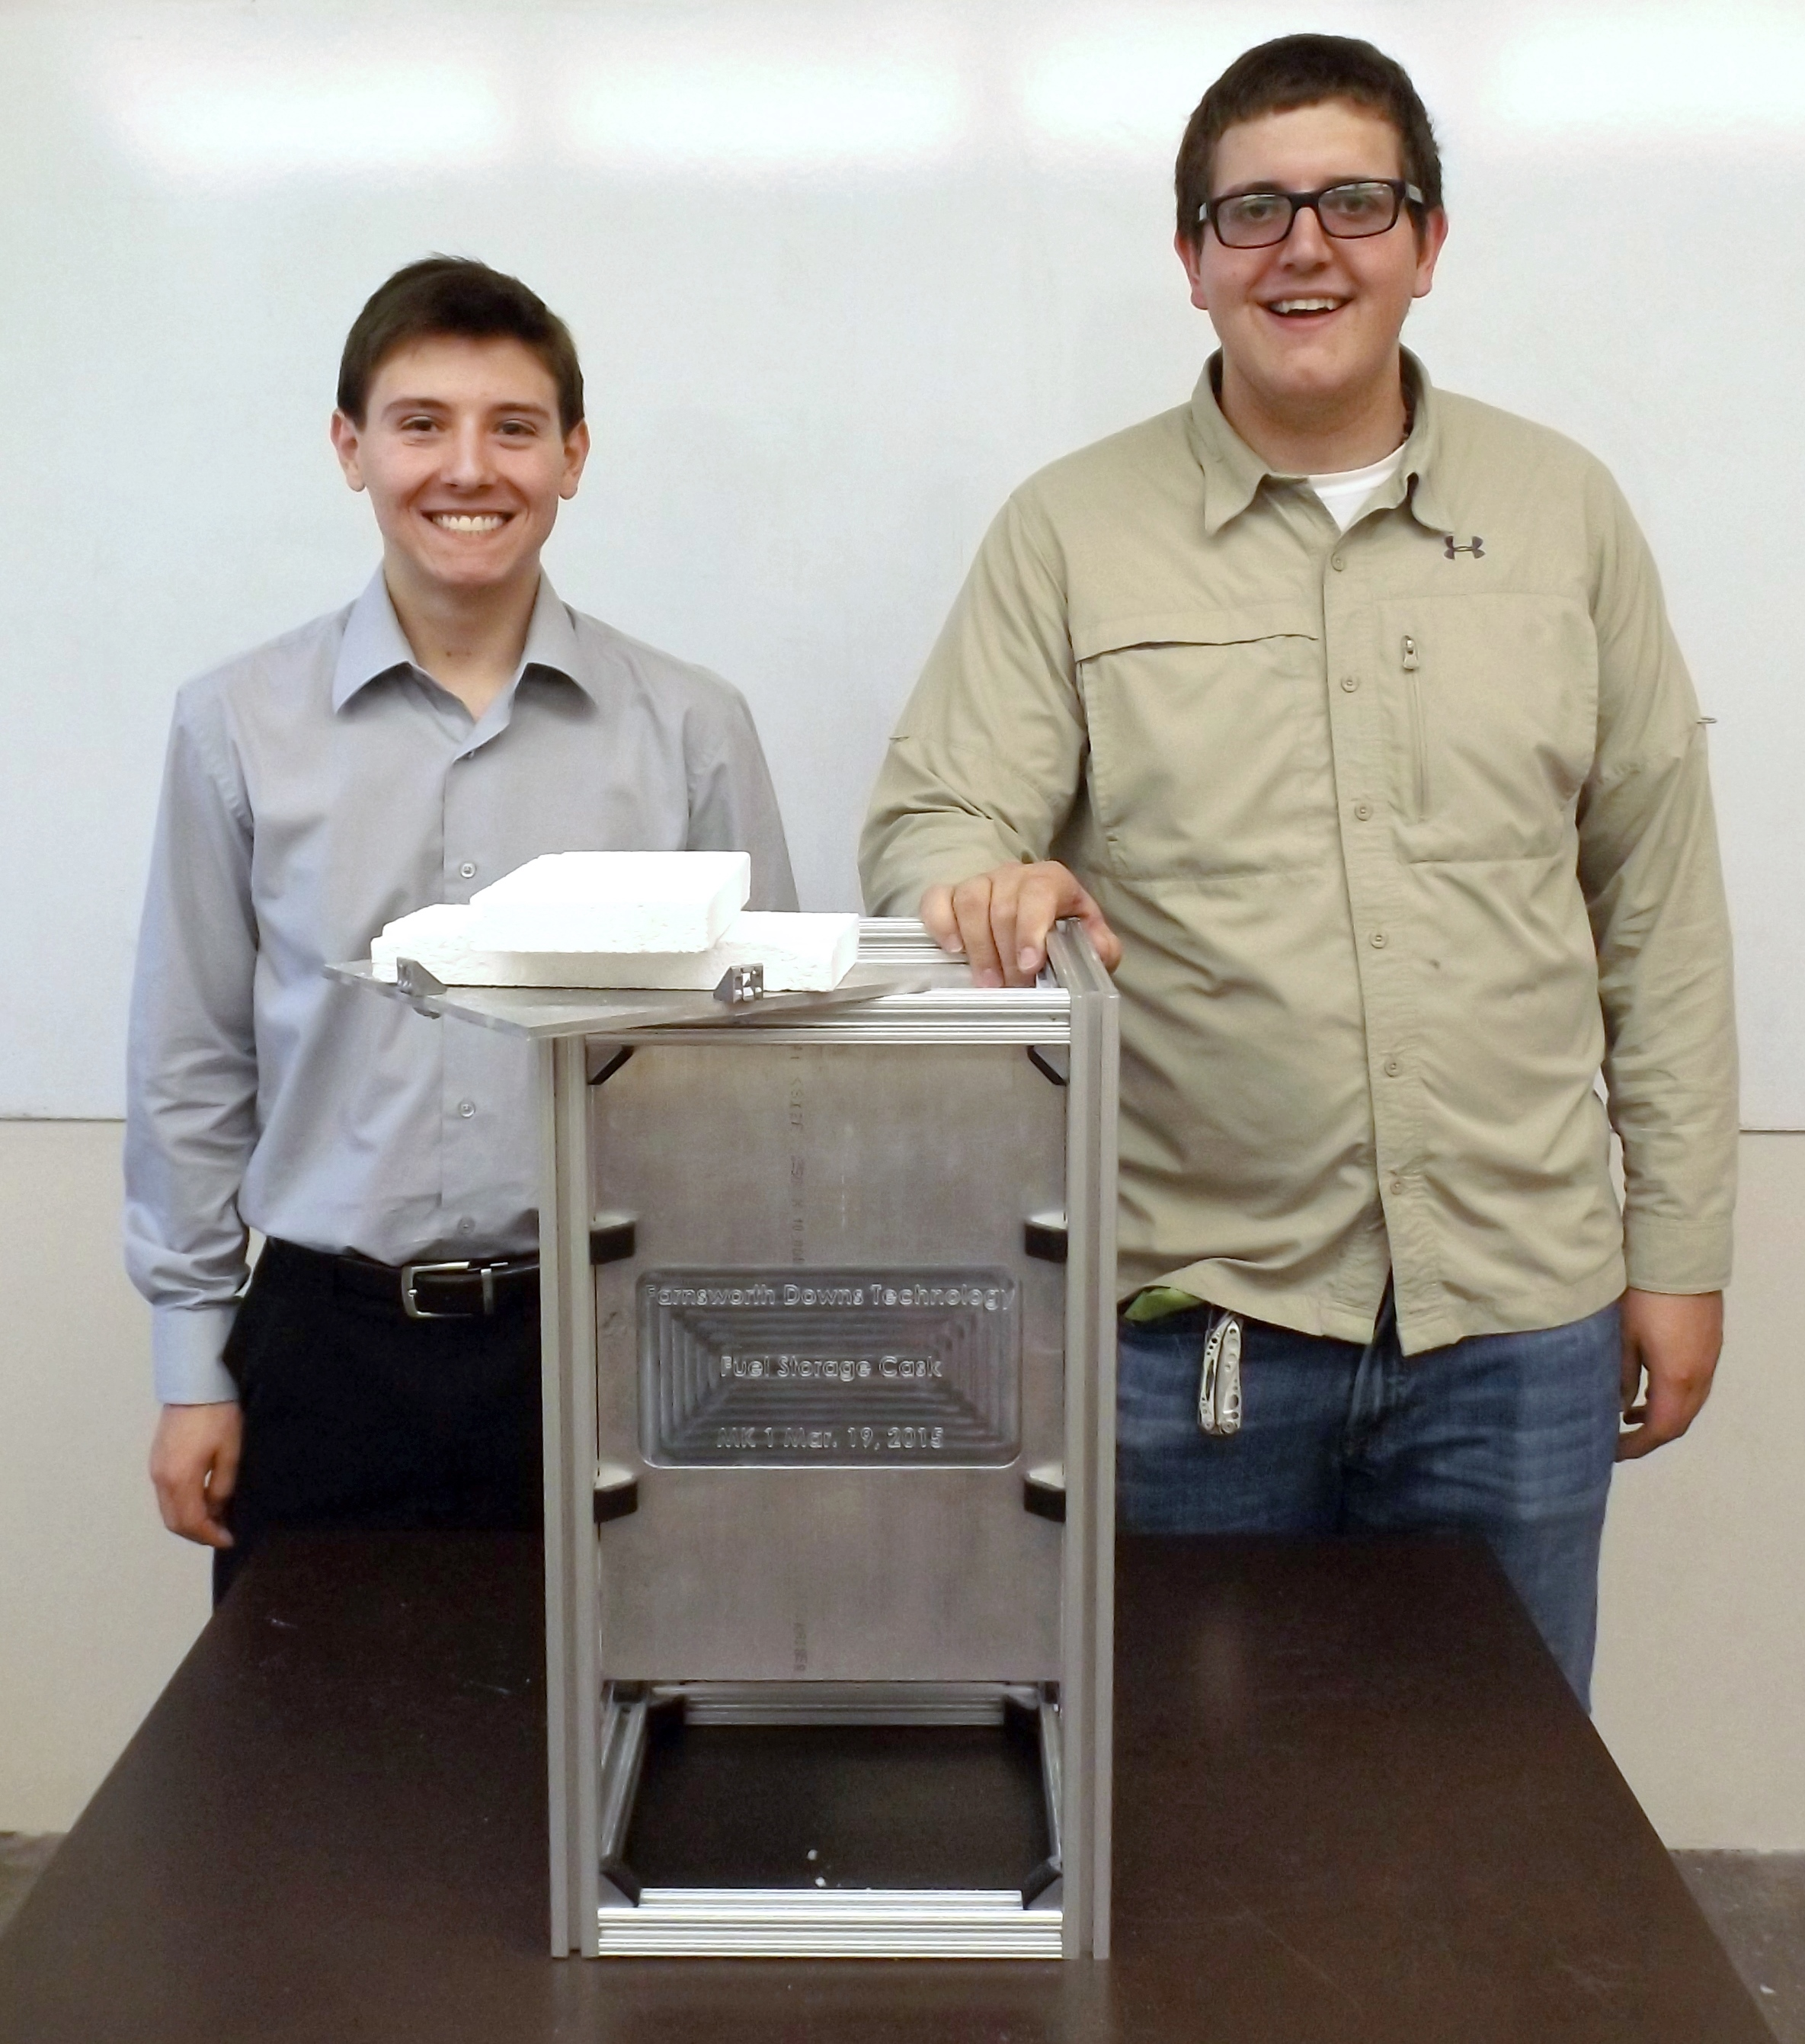 Adrian Del Grosso (left) and Conrad Farnsworth (right) stand with their first fuel cask prototype in their lab space on the SDSM&T campus in Rapid City, SD.